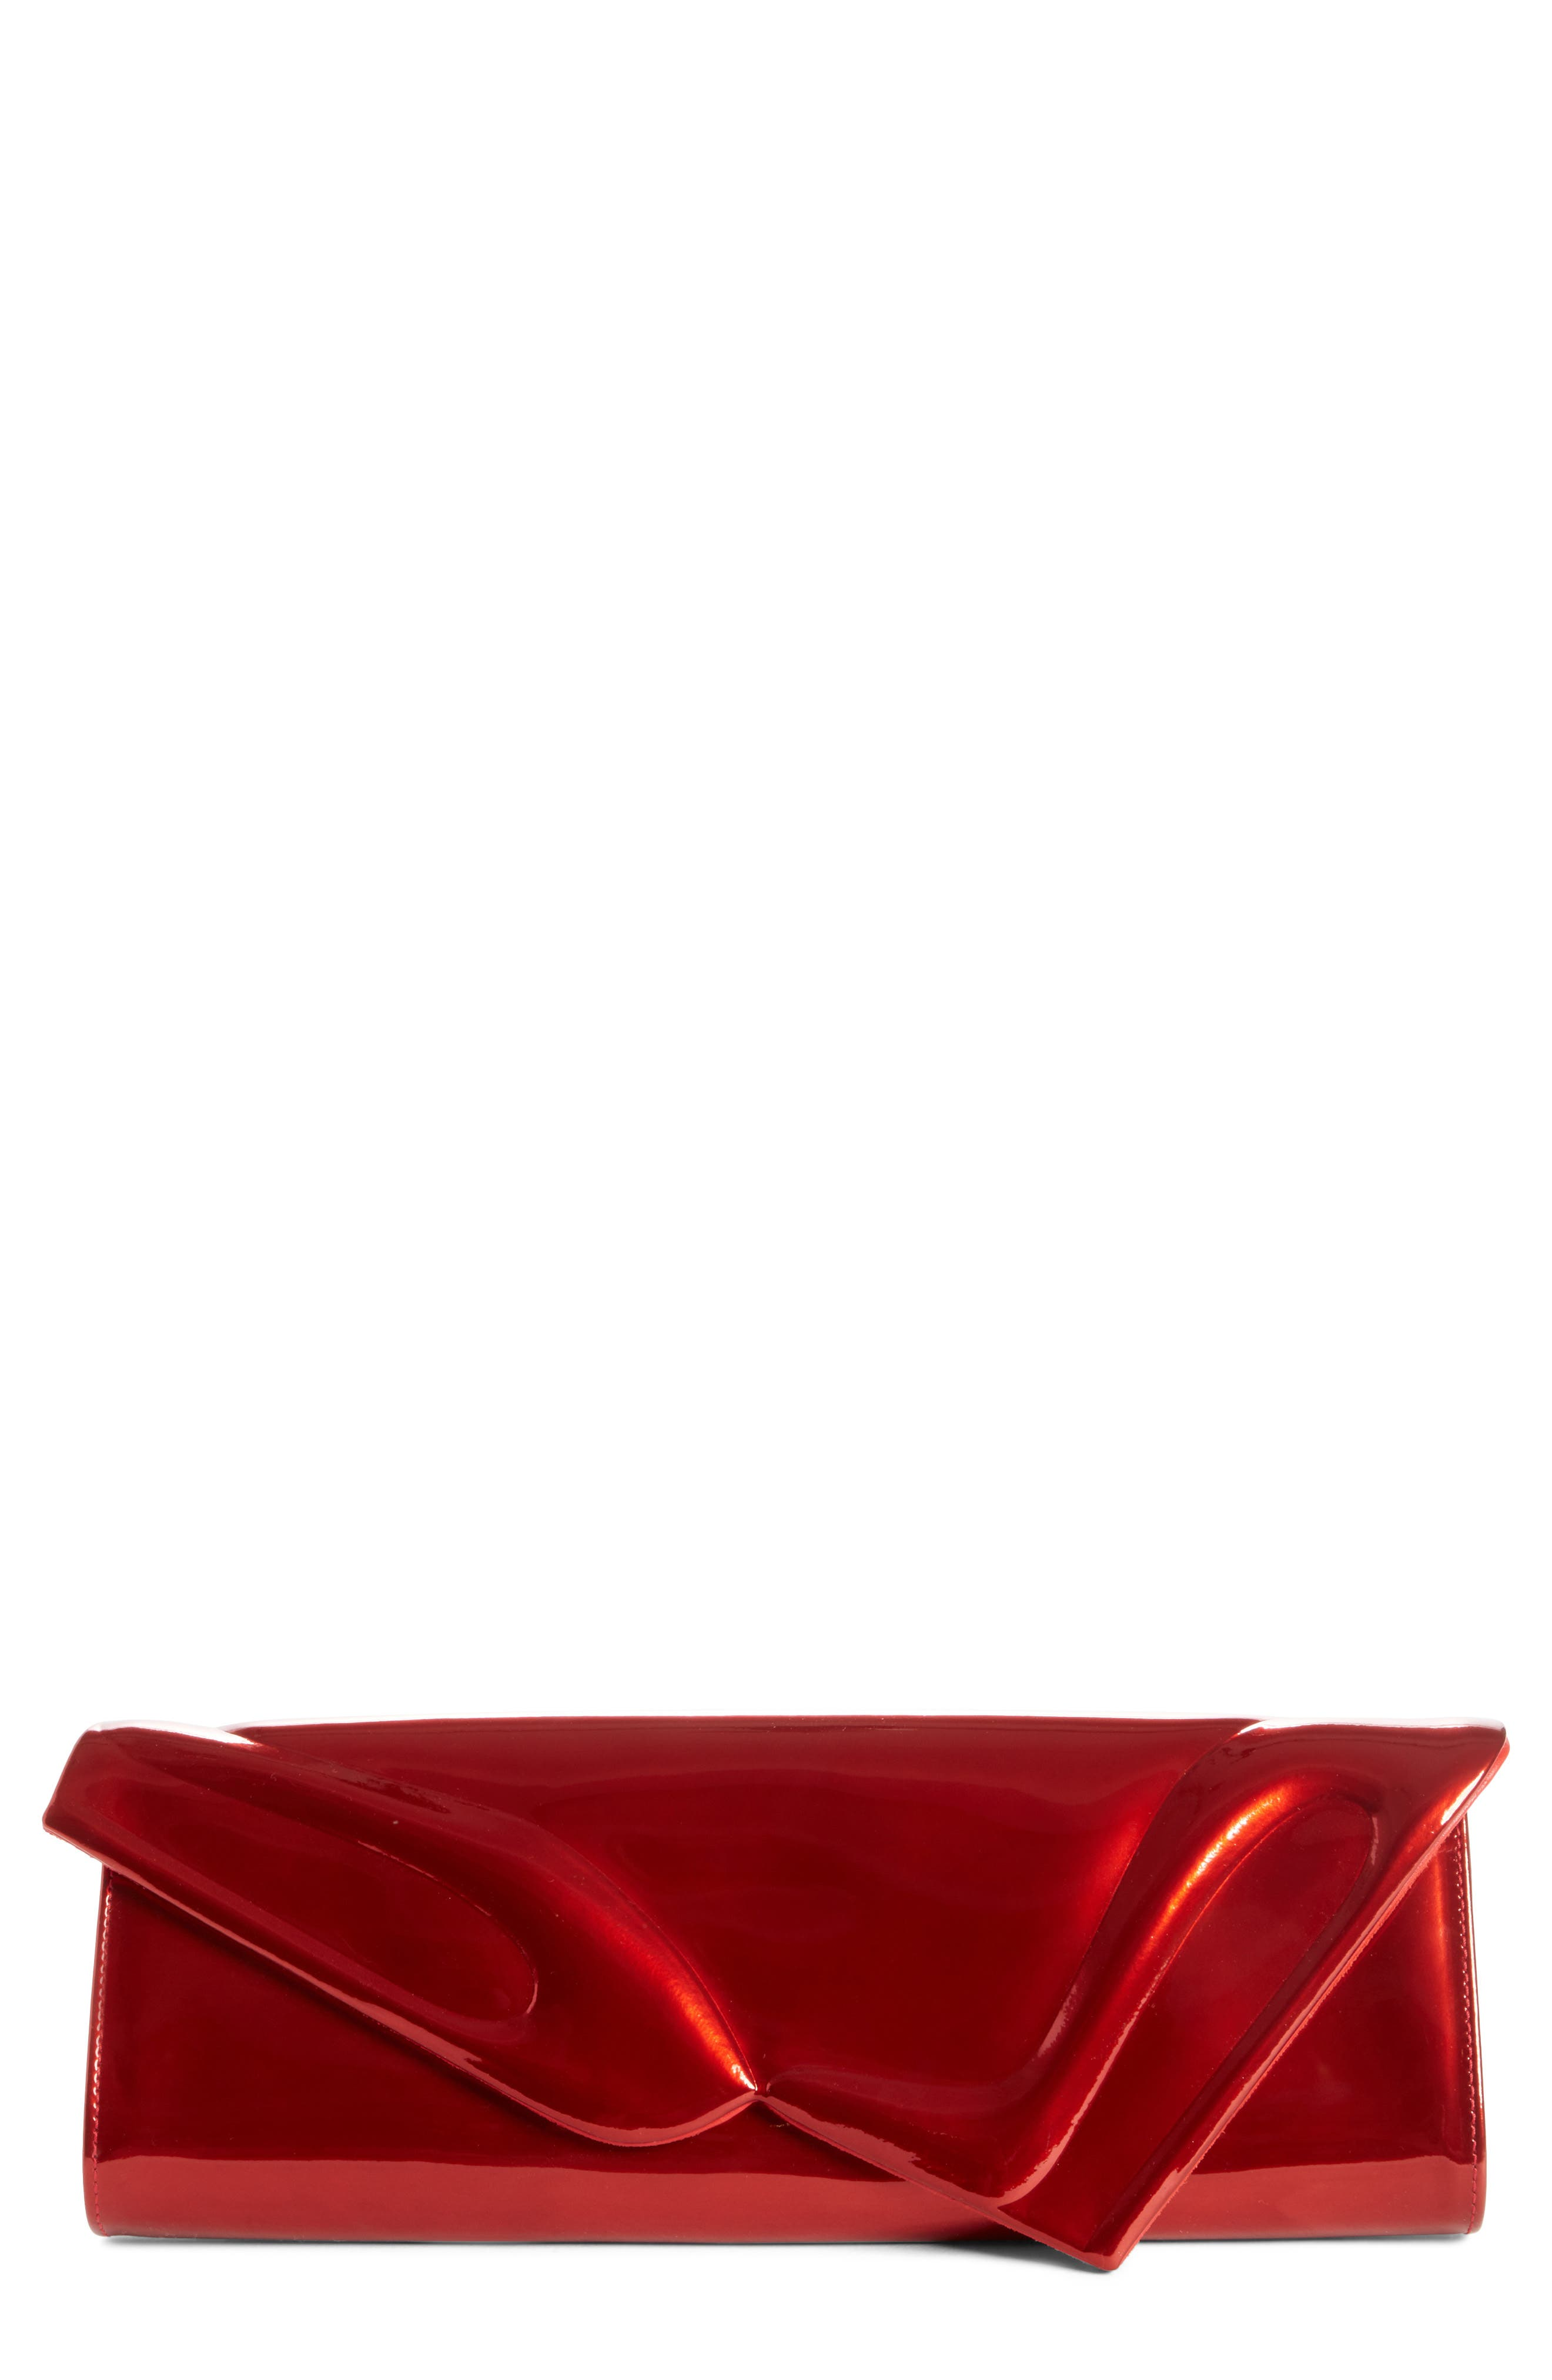 'So Kate' Patent Leather Clutch,                             Main thumbnail 1, color,                             Red